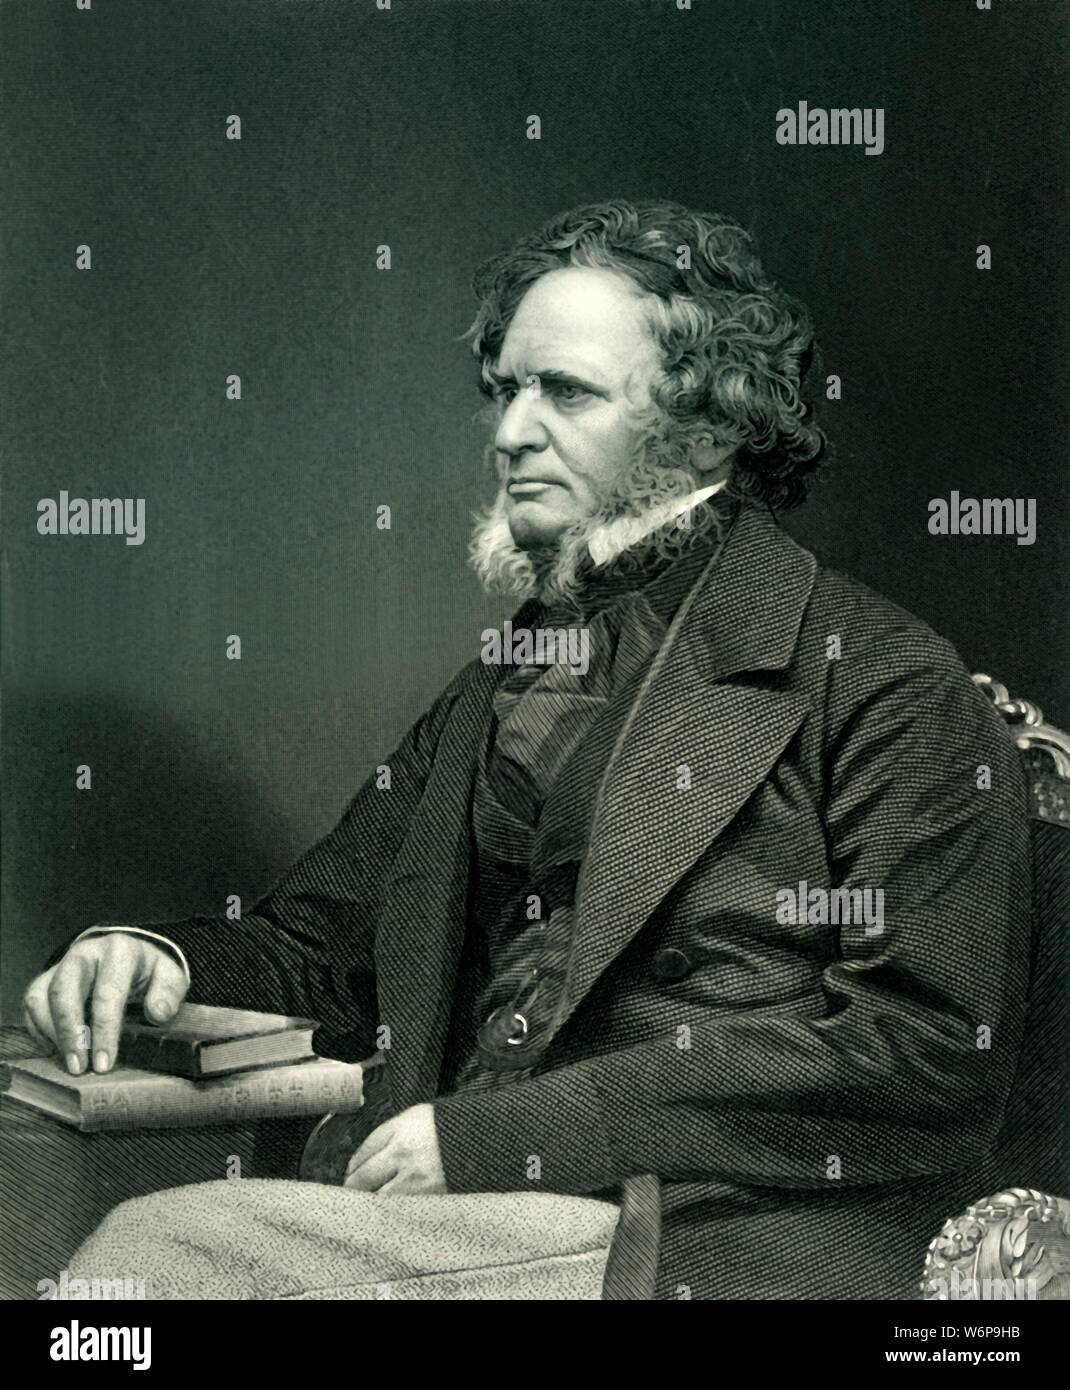 """'The Right Honourable Edward Geoffrey Stanley, Earl of Derby, K.G.', c1860, (c1884). Edward Smith-Stanley, 14th Earl of Derby (1799-1869), British Conservative educated at Eton College and Christ Church, Oxford. Three-time Prime Minister during Victorian-era and longest serving leader of the Conservative Party. Associated with Reform Act 1867. From """"Leaders of the Senate: A Biographical History of the Rise and Development of the British Constitution, Vol. II."""", by Alexander Charles Ewald, F.S.A. [William Mackenzie, London, Edinburgh & Berlin, ] Stock Photo"""